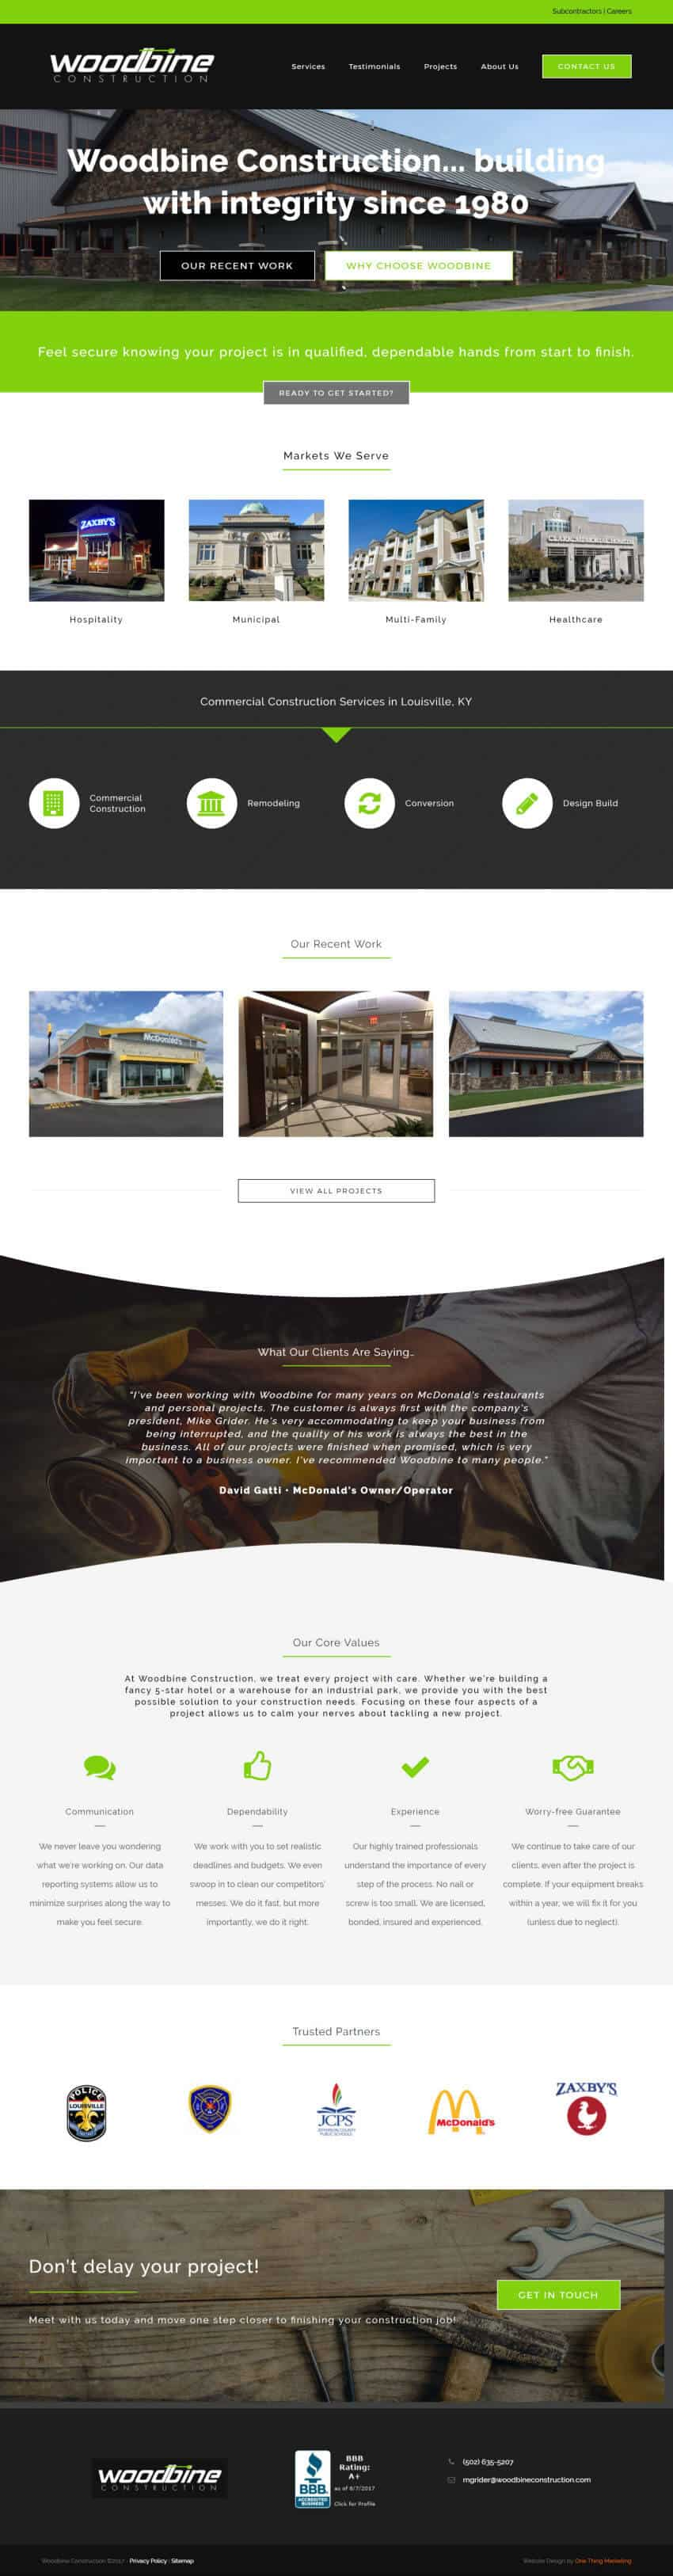 Woodbineconstruction Homepage - After